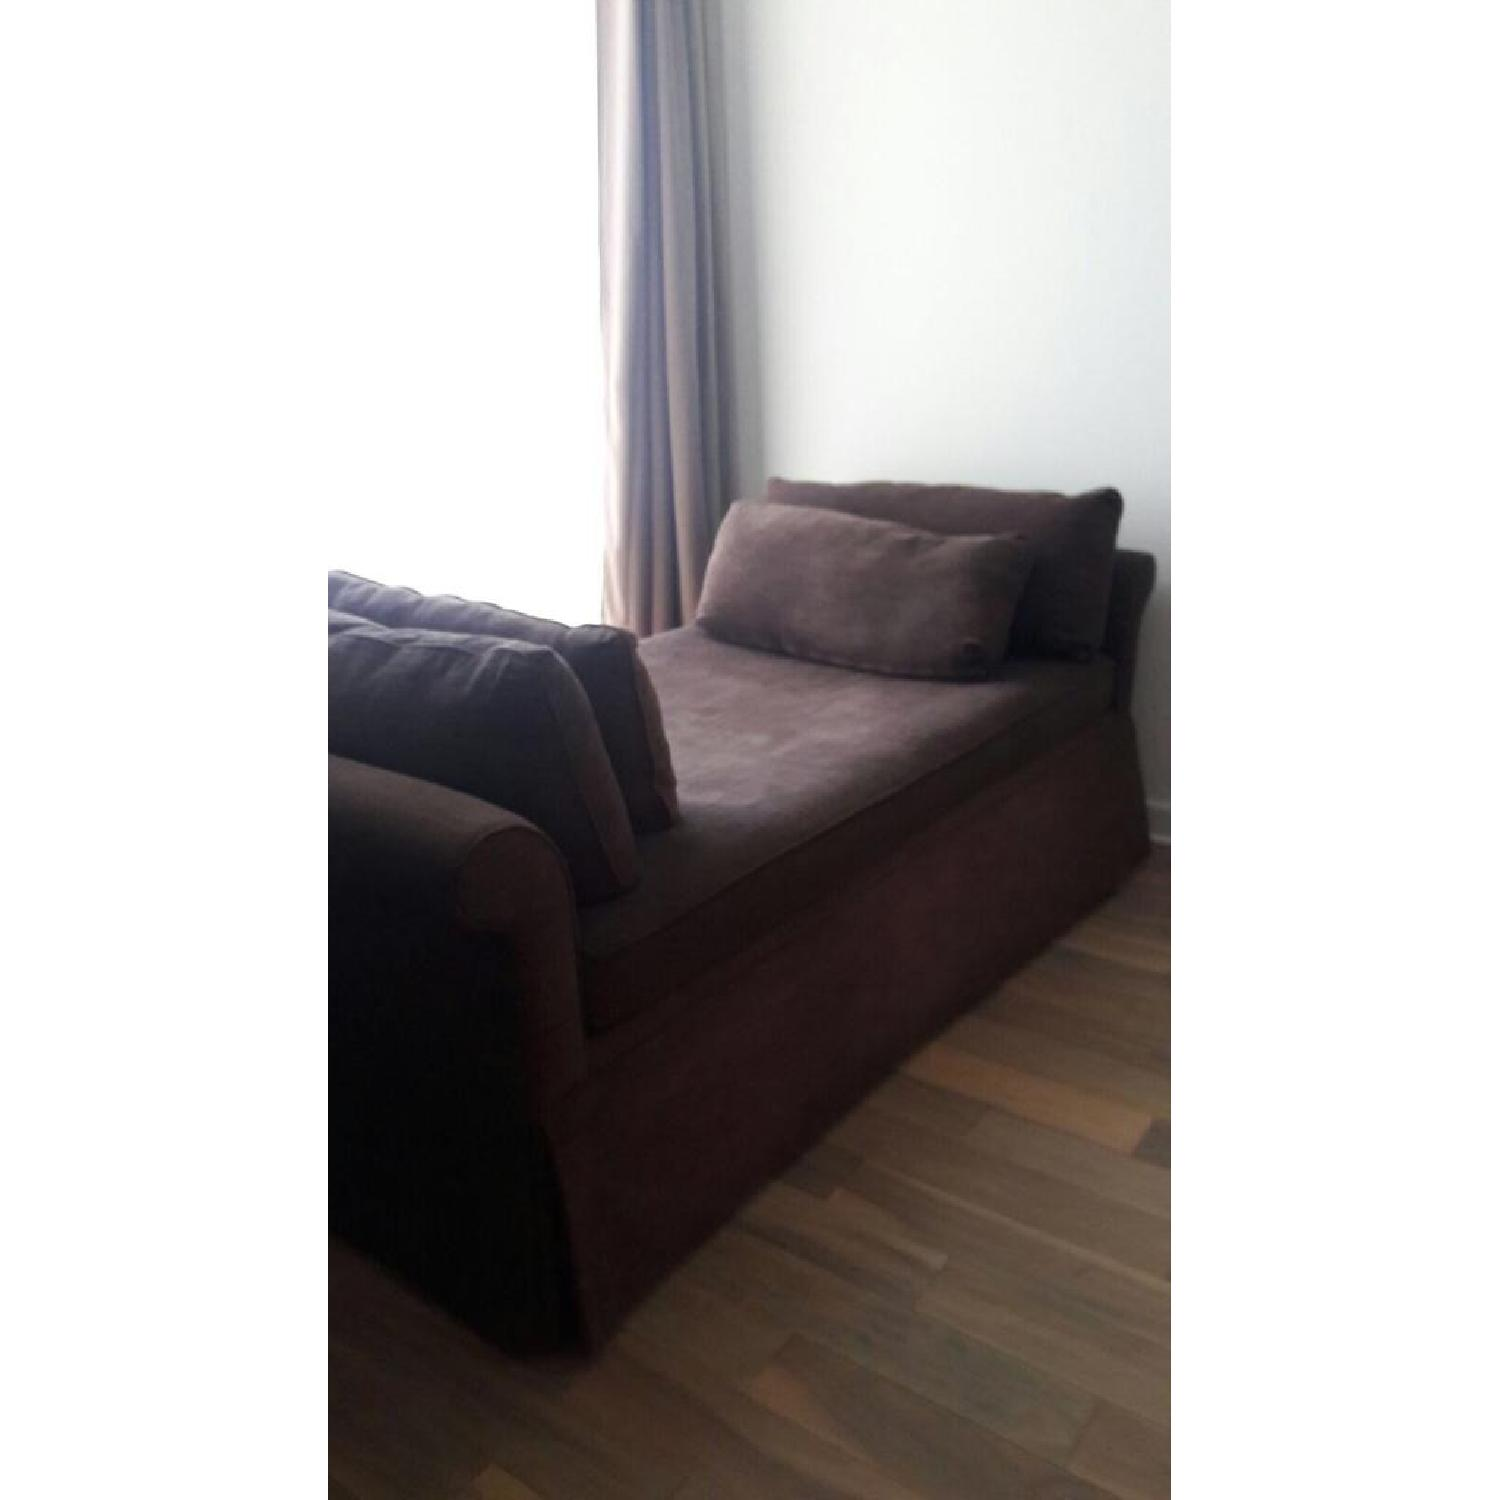 Room & Board Upholstered Daybed w/ Trundle - image-2